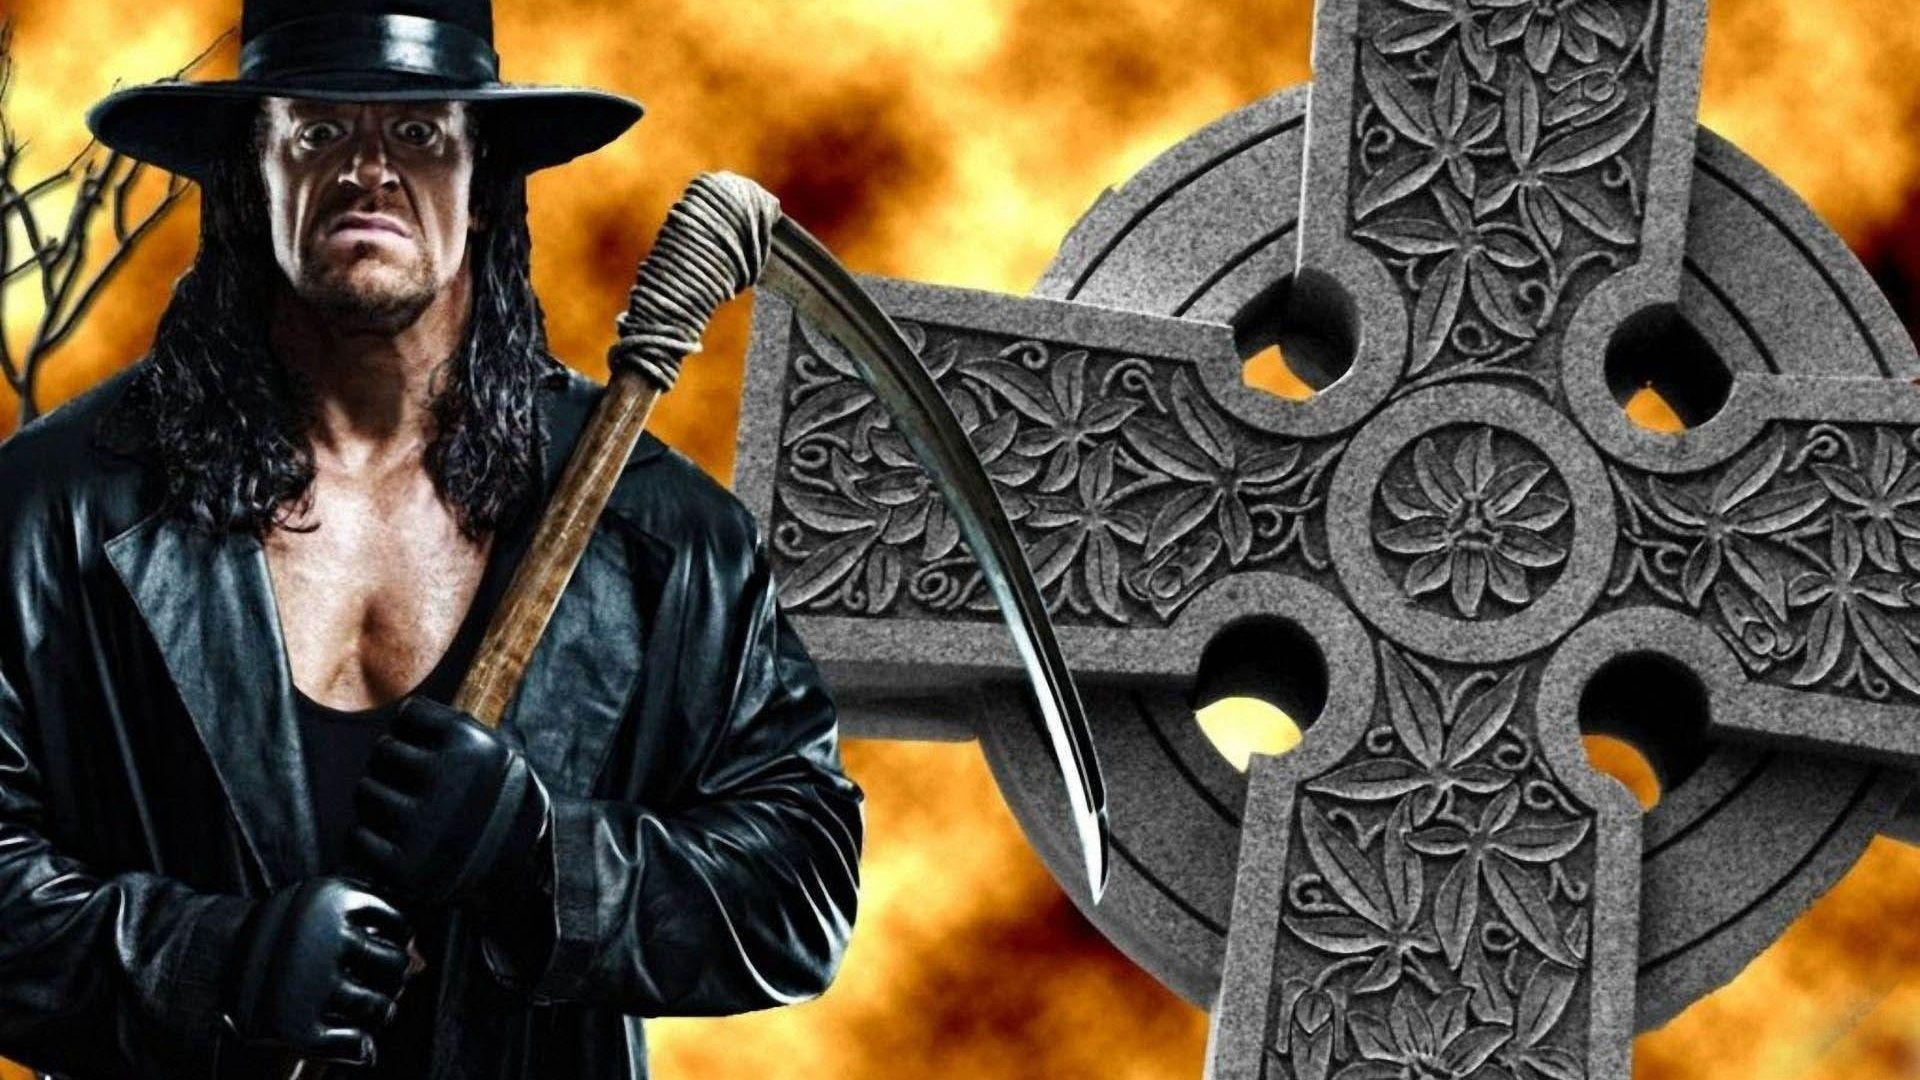 undertaker images free download